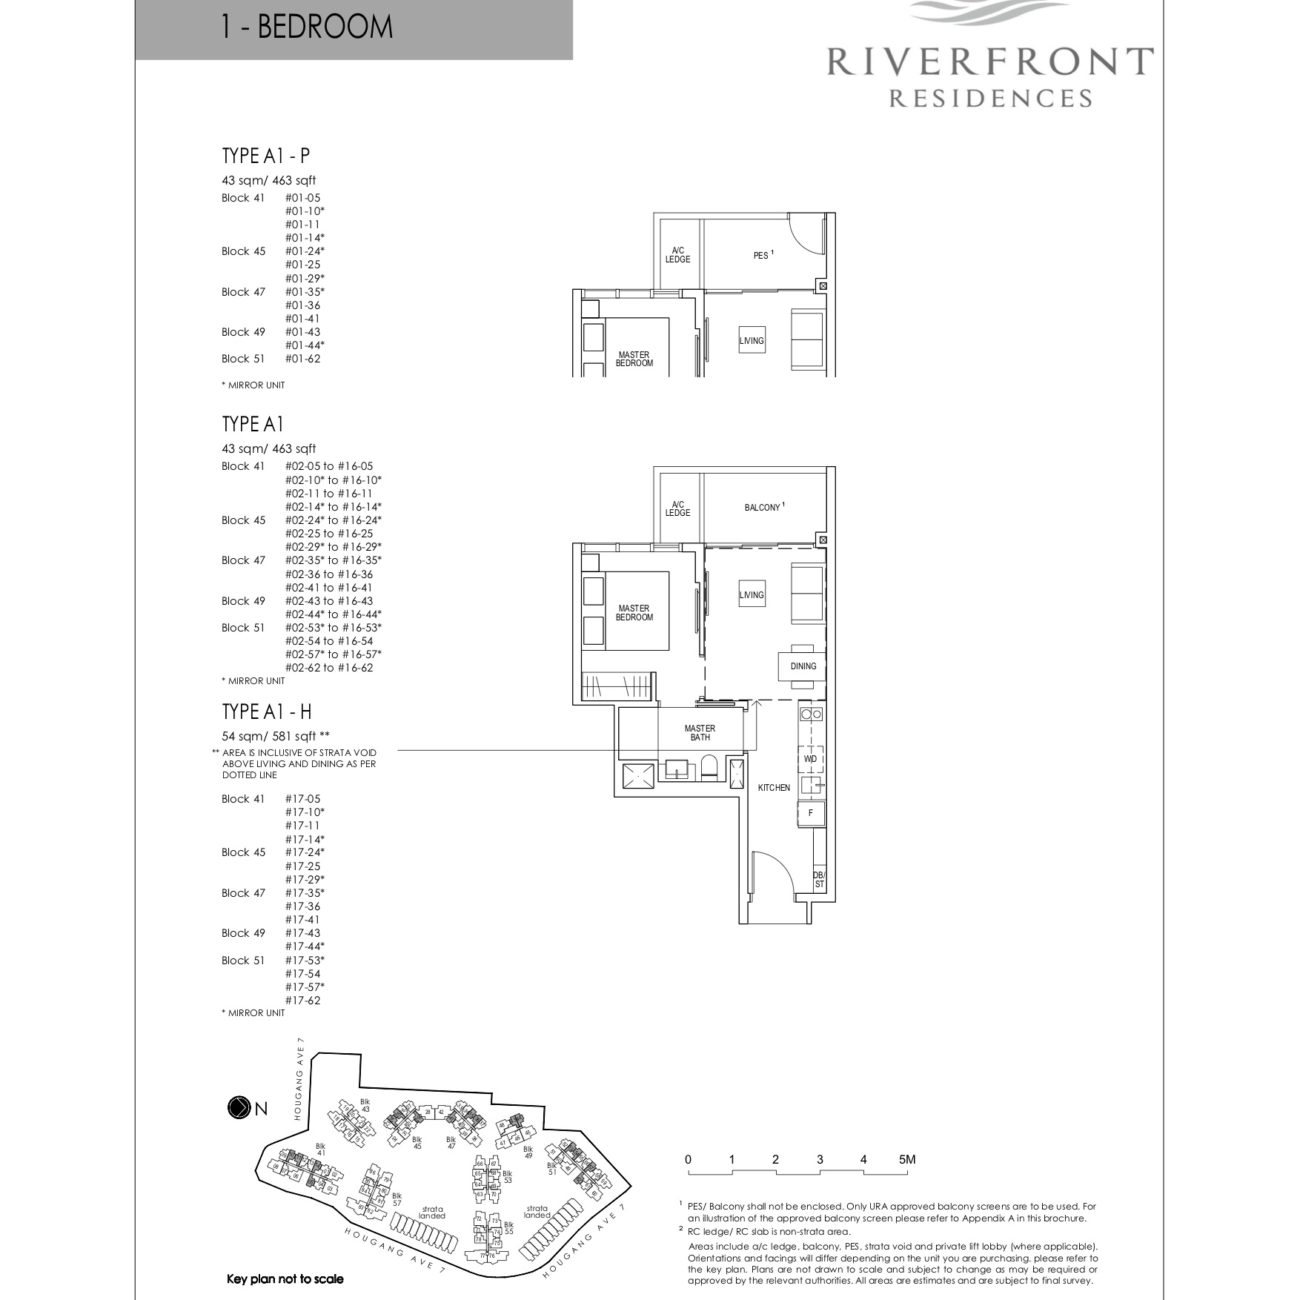 riverfront-residences-floorplan-1bedroom-a1